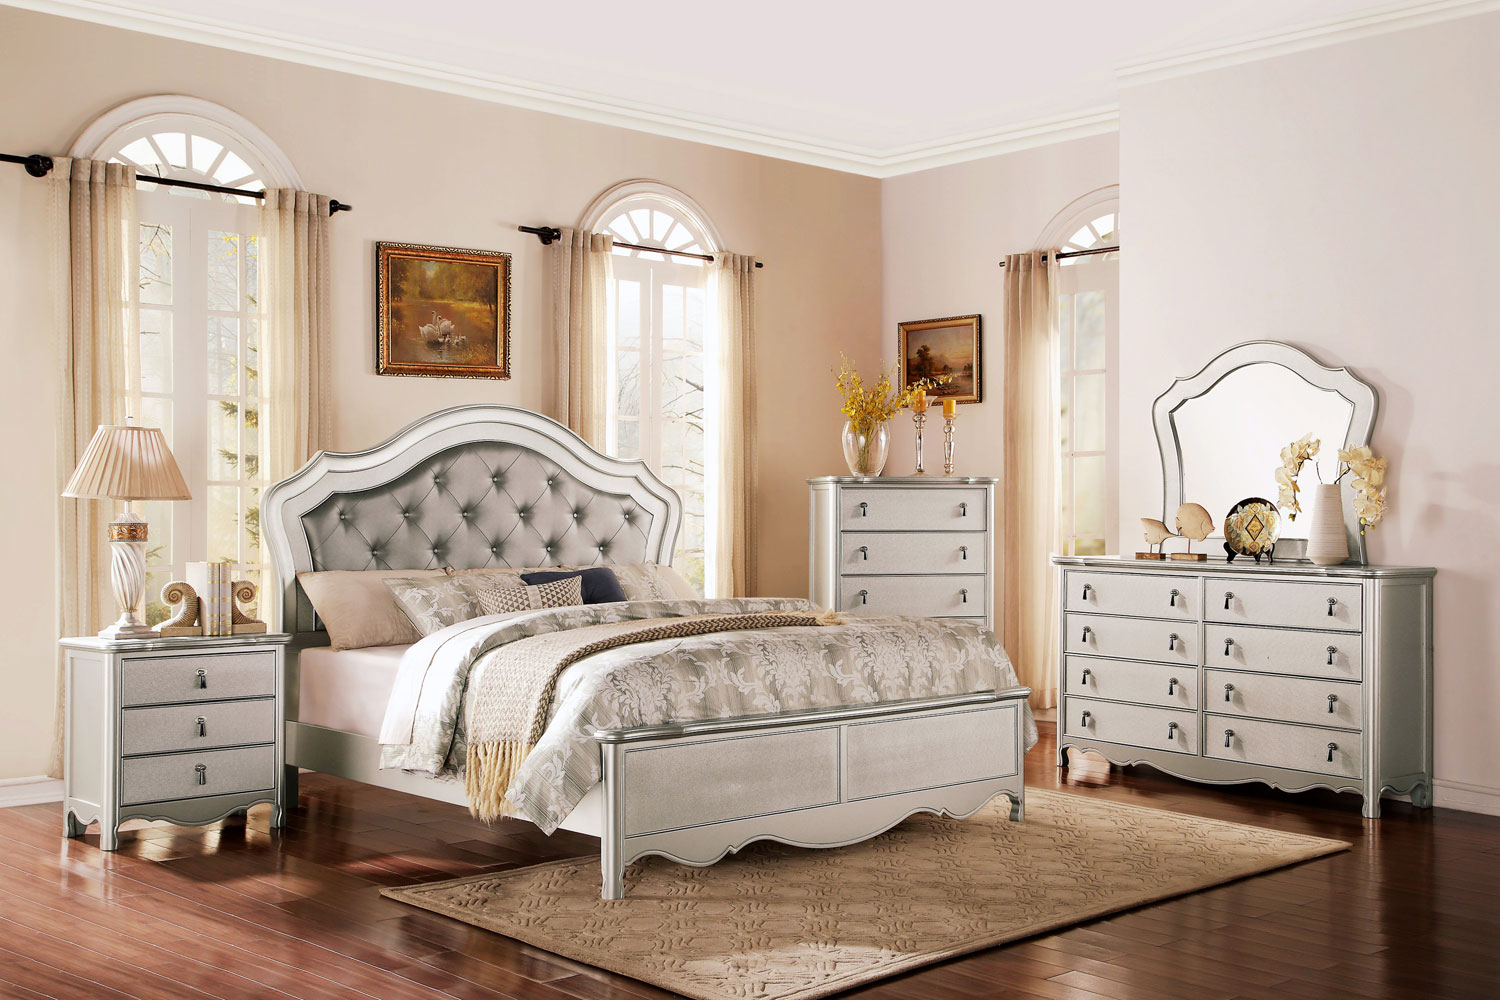 Homelegance Toulouse Upholstered Bedroom Set - Champagne B1901-1 ...